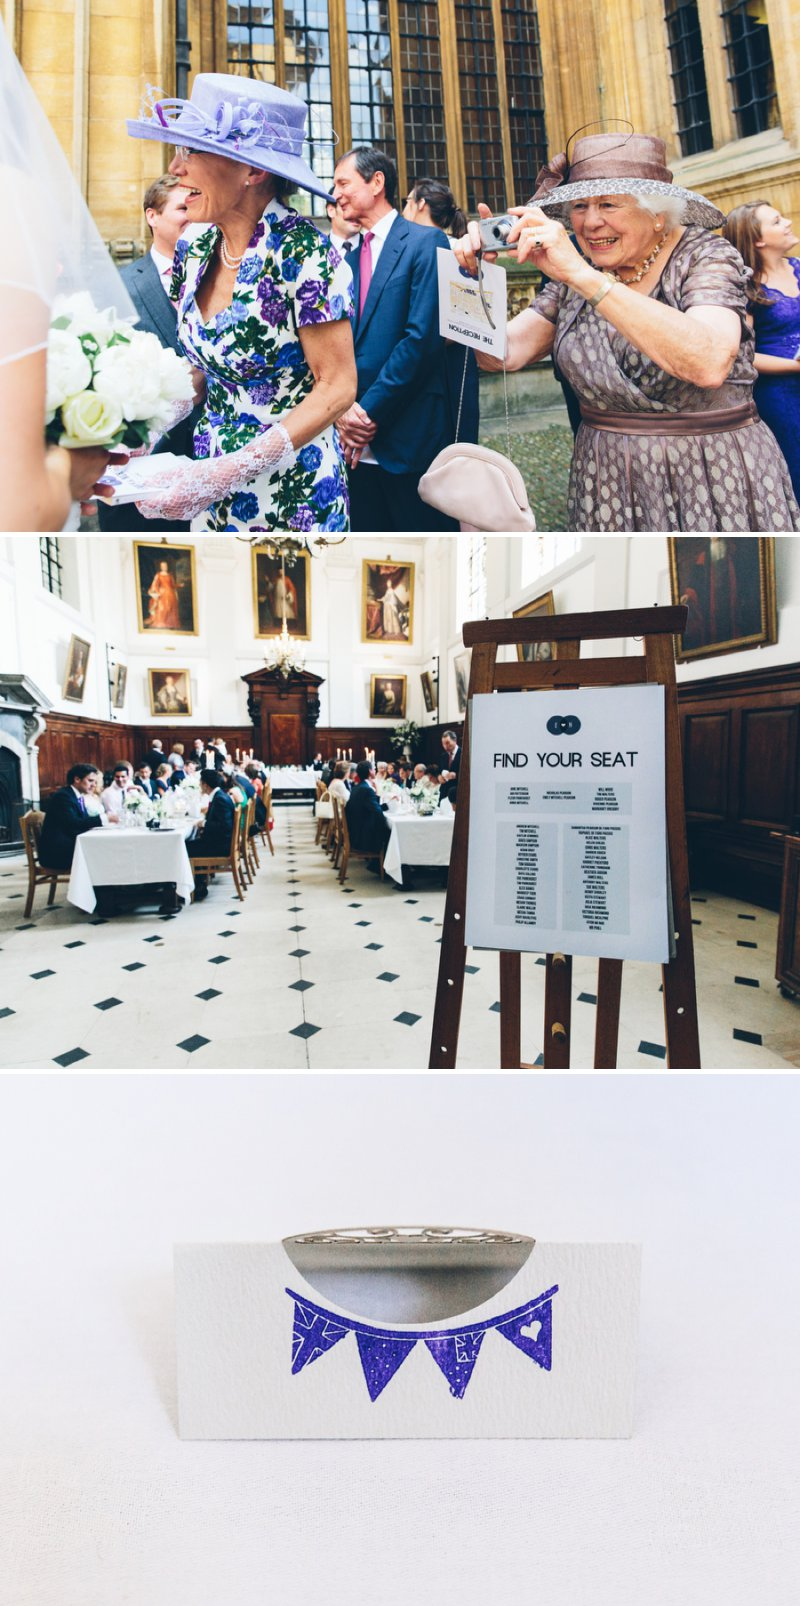 Elegant Contemporary Wedding At The Bodleian Library Queens College Oxford With Bride In Ulanova By Pronovias And Jimmy Choo Heels With Groom In Suit By Cad And The Dandy And Bridesmaids In Royal Blue Images By Mister Phill 5